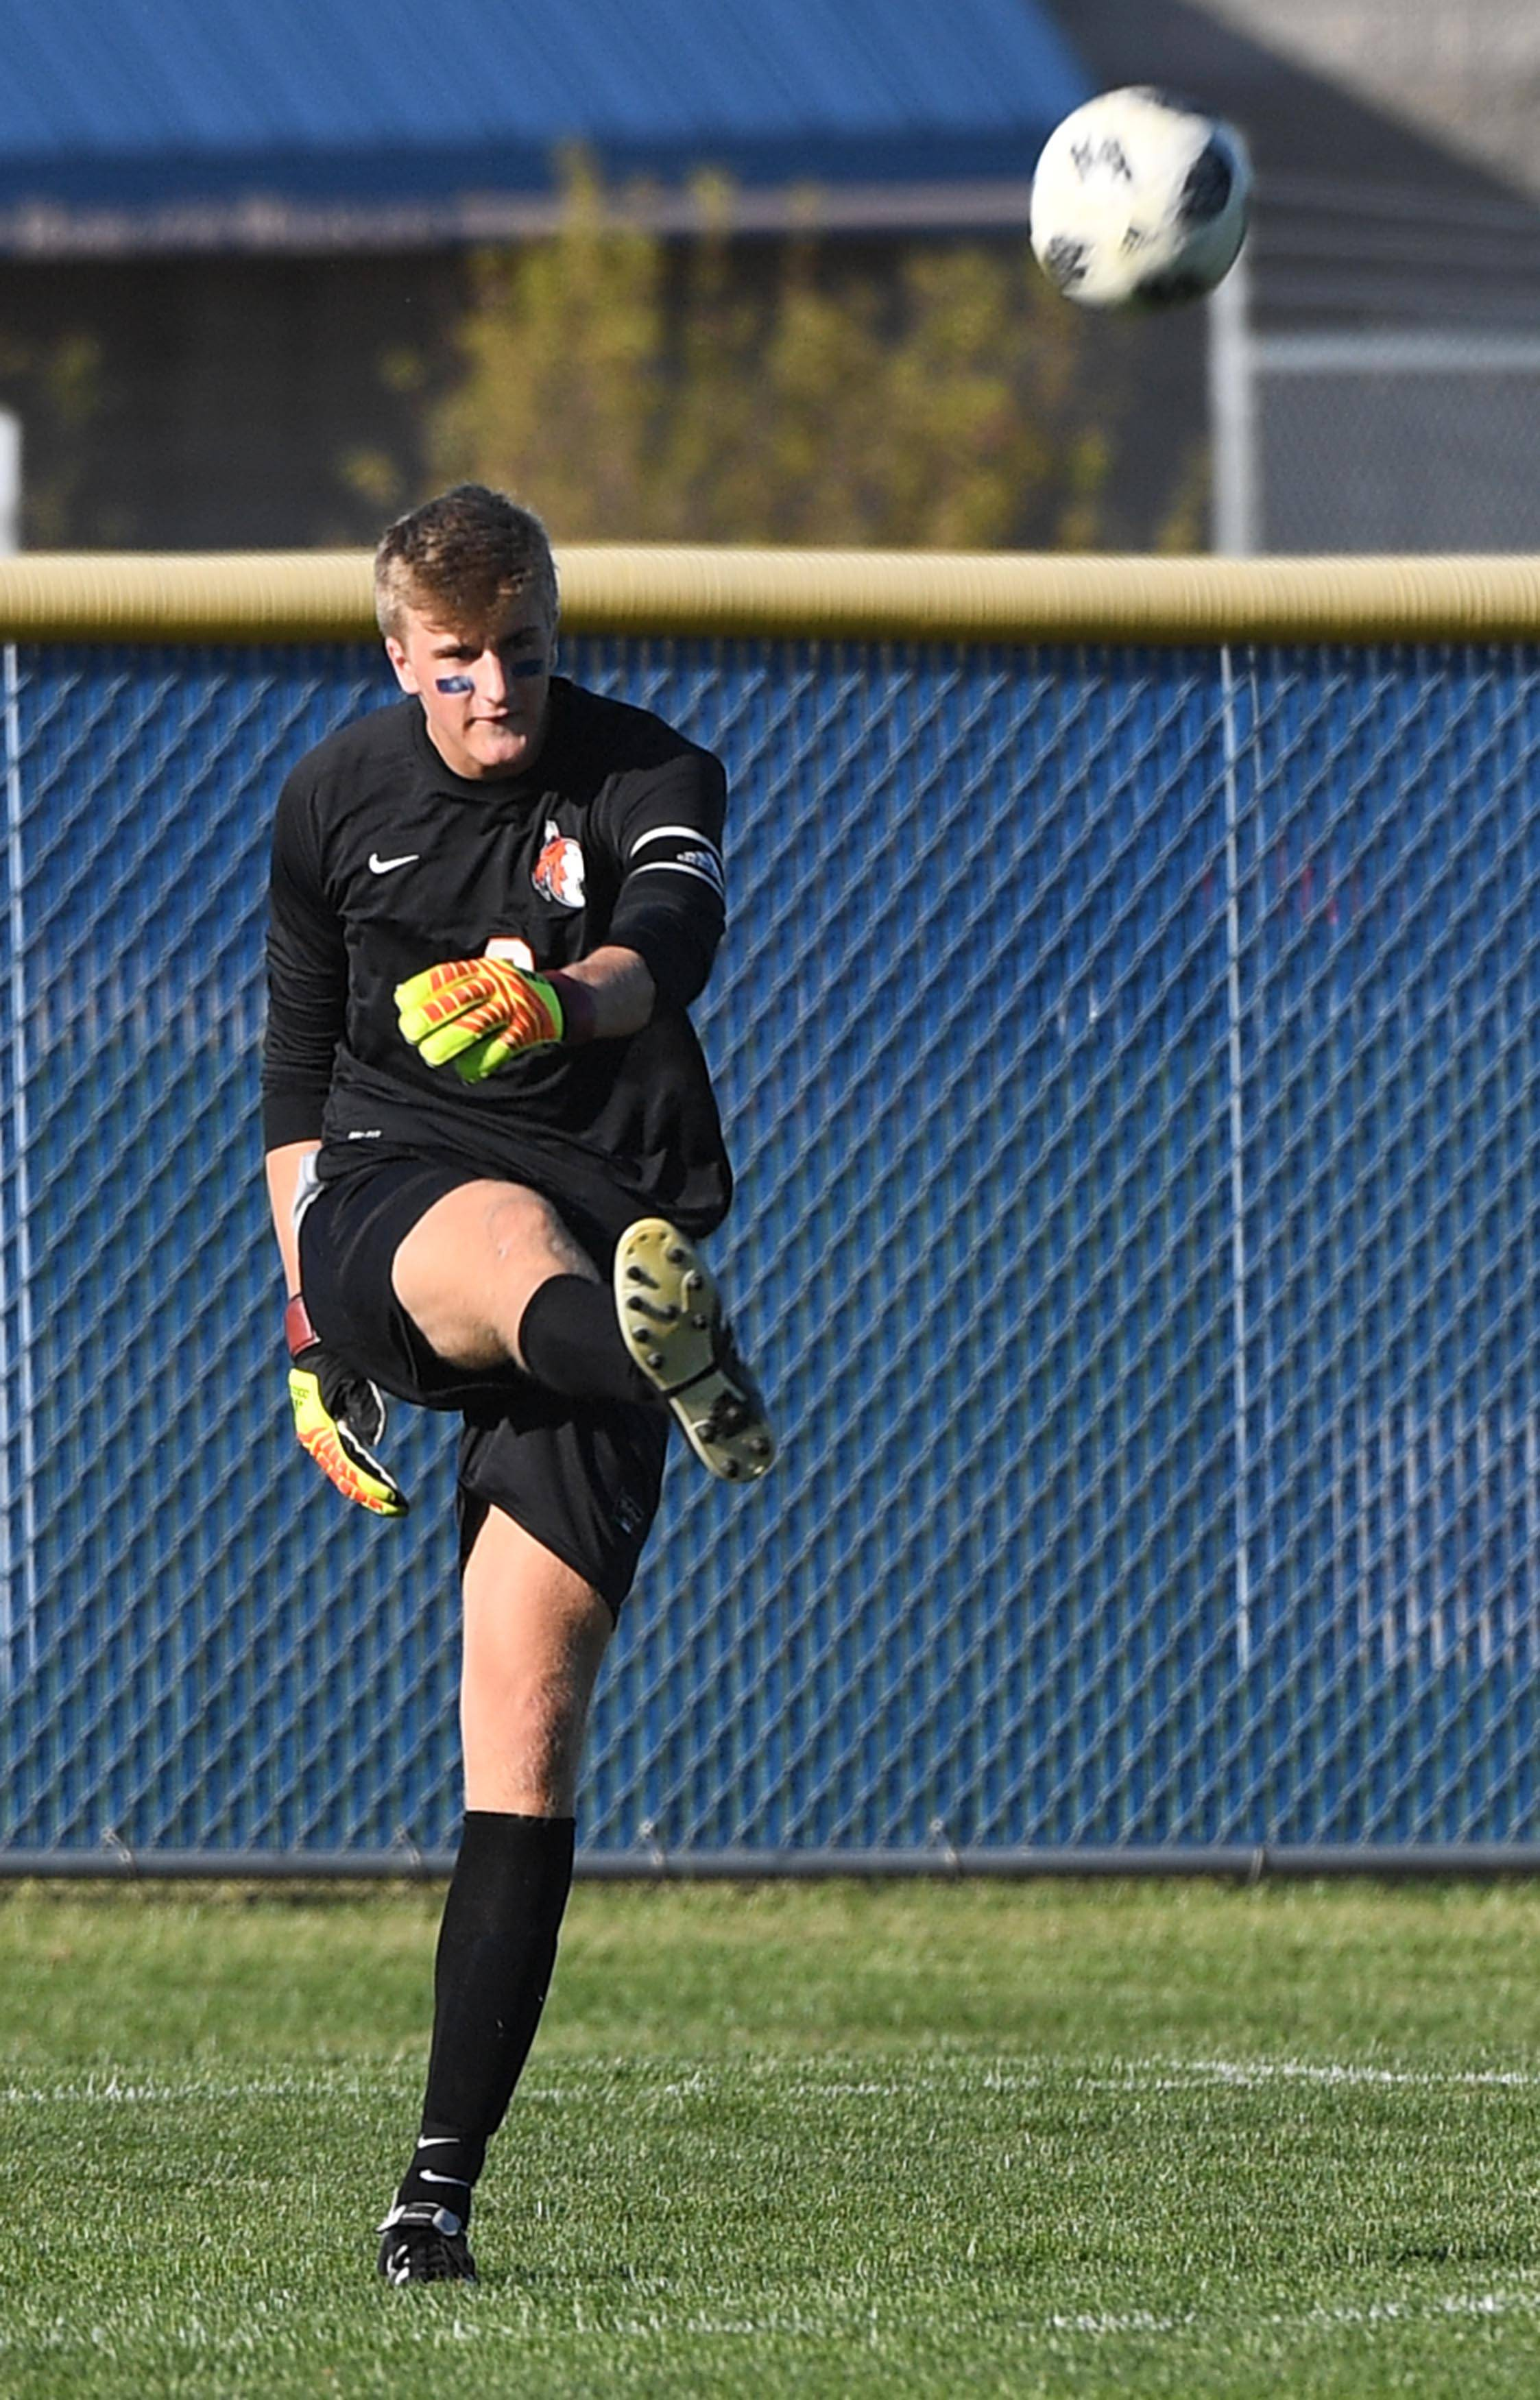 Naperville North goalkeeper Tommy Welch sends the ball upfield against Neuqua Valley in a boys soccer game Tuesday in Naperville.